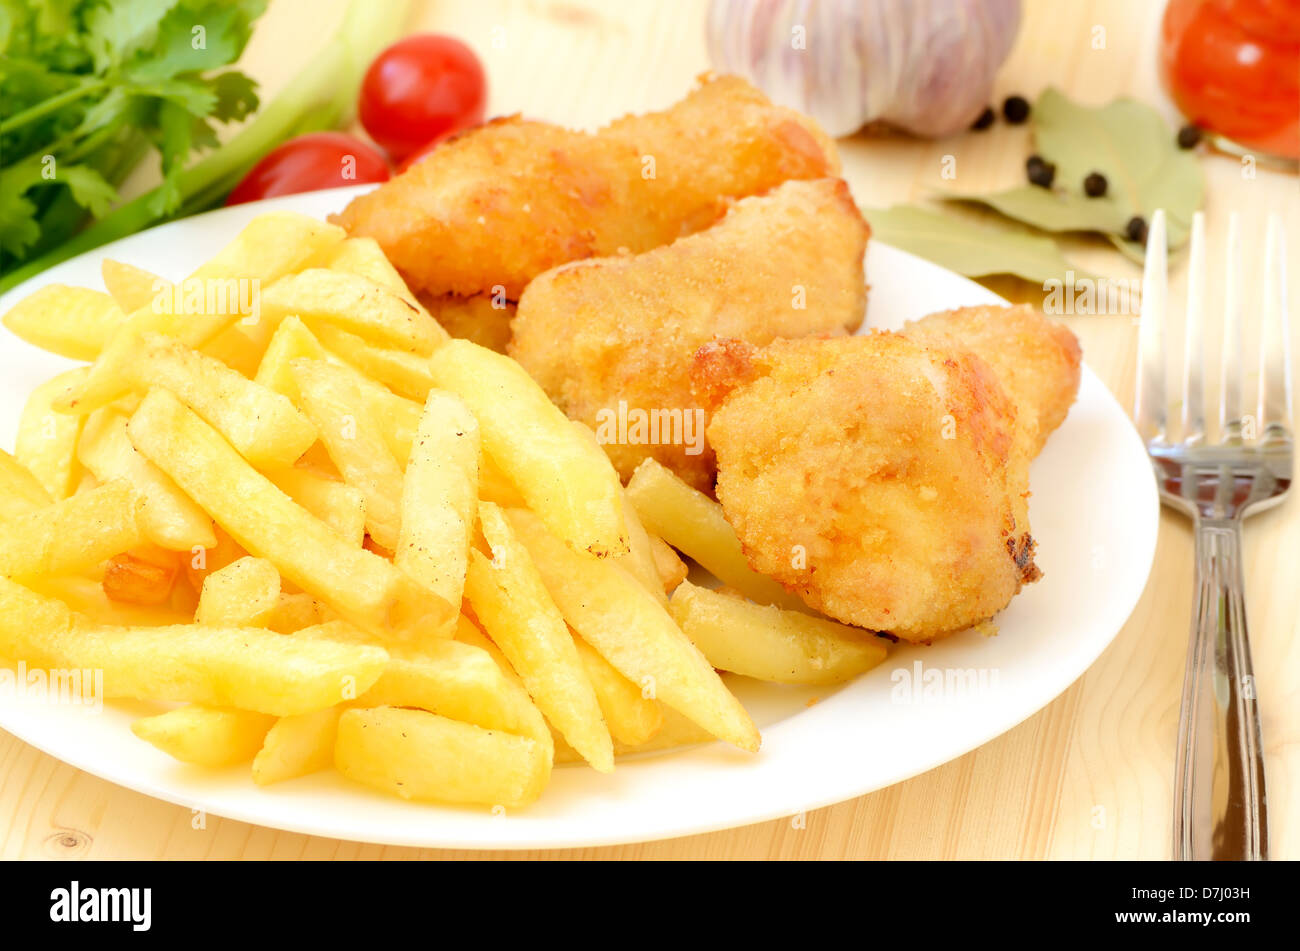 Fried chicken with french fries on the table - Stock Image